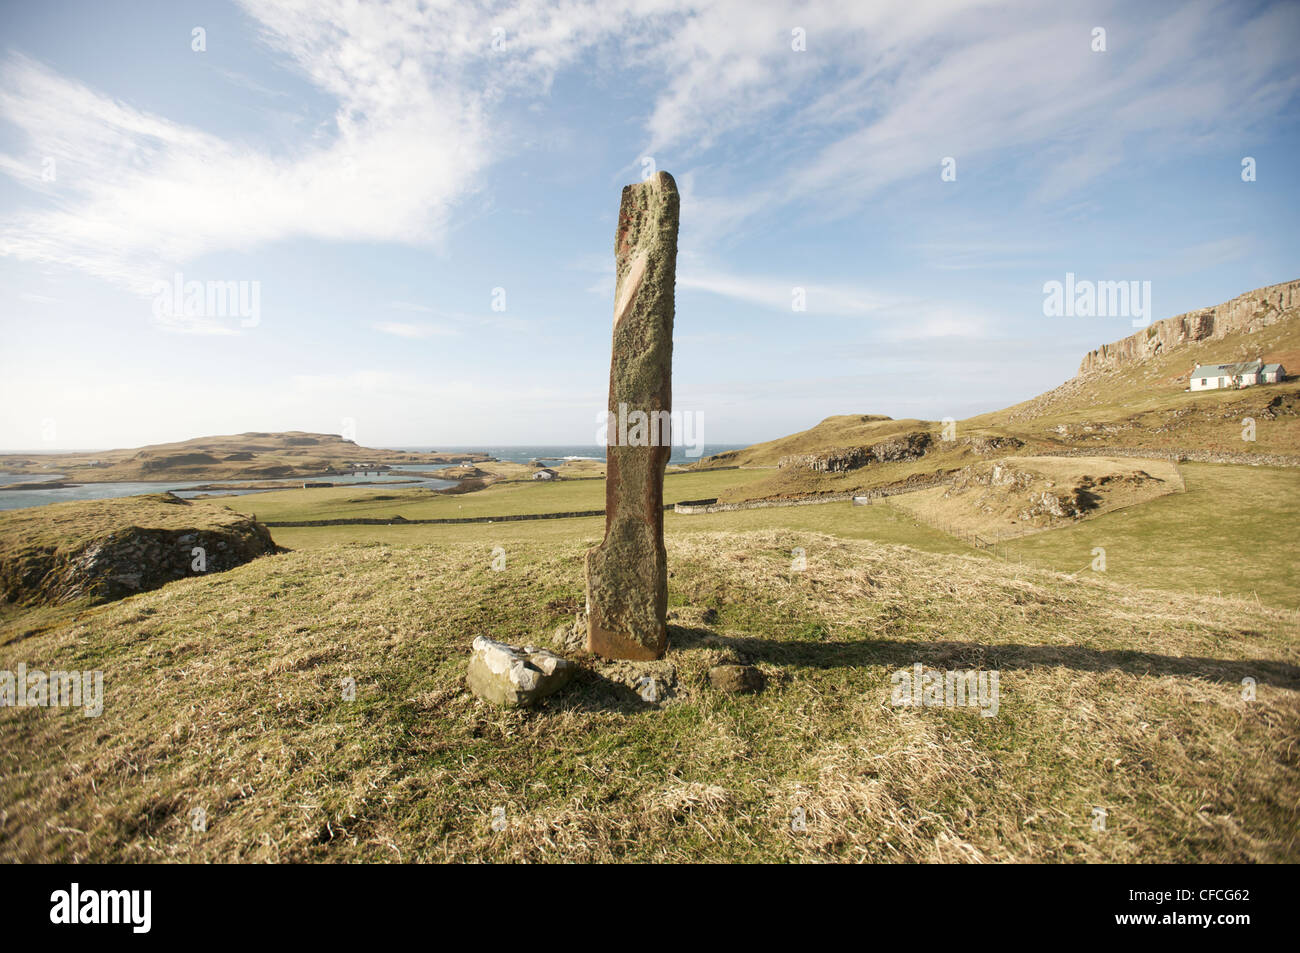 A standing stone on the island of Canna in the Inner Hebrides off the west coast of Scotland. - Stock Image